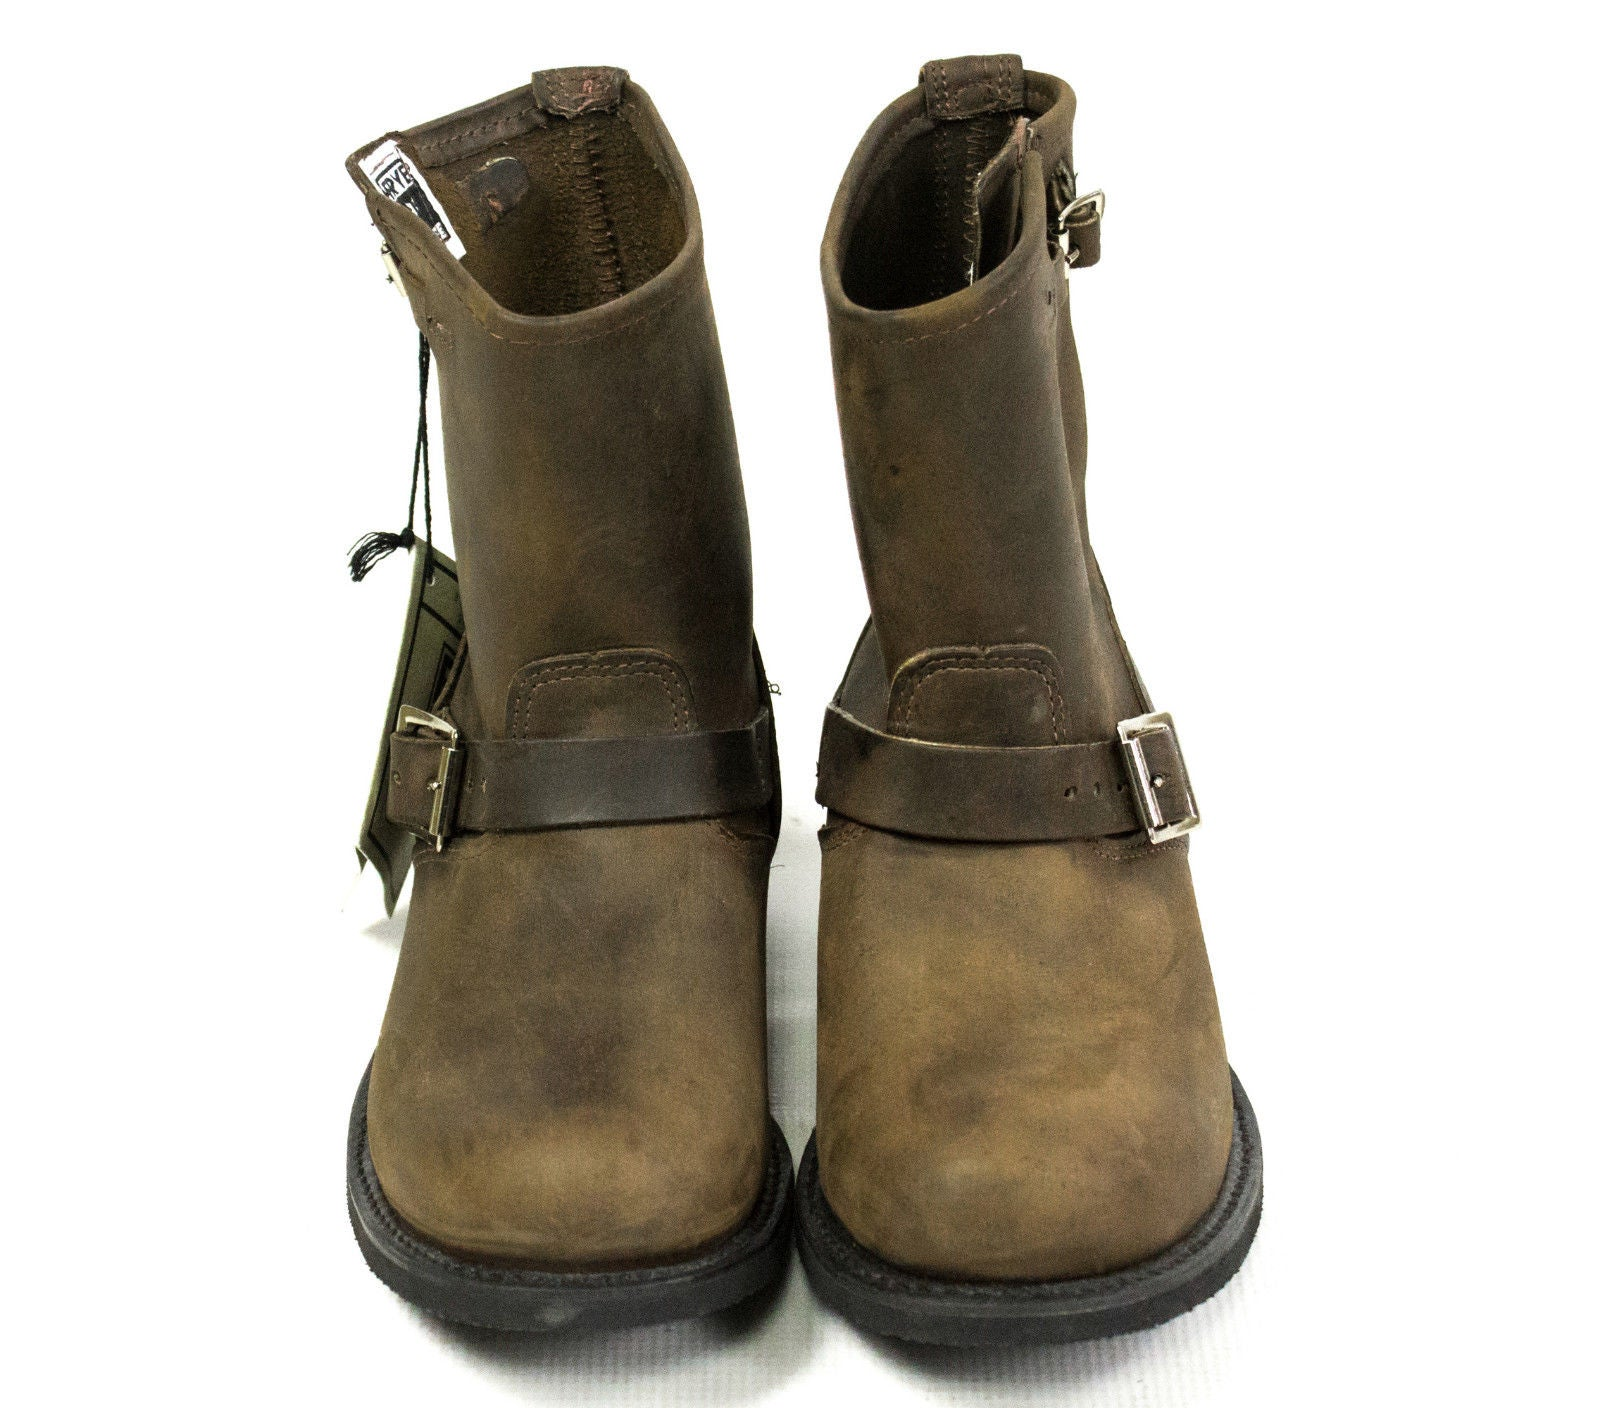 FRYE Engineer 8R Heritage Gaucho Leather Boots USA SIZE: Left 10, Right 9.5 - secondfirst